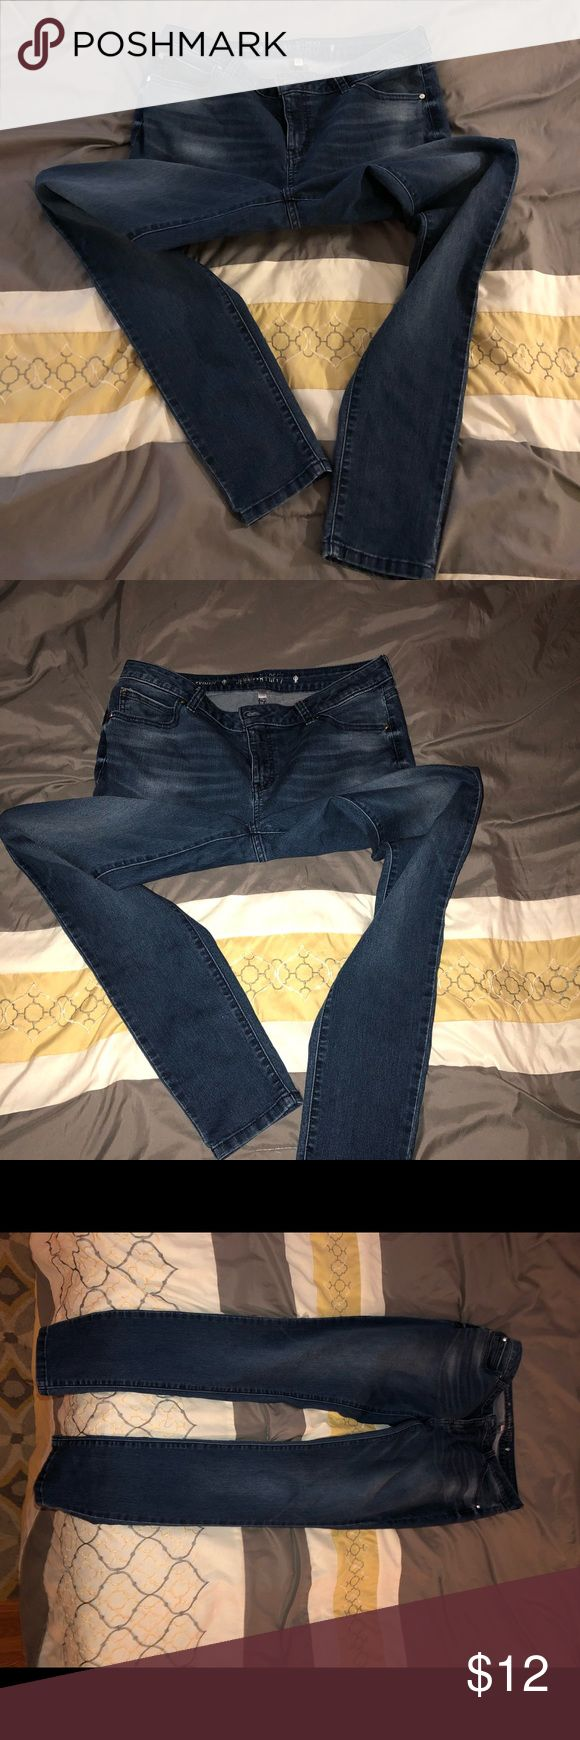 Jennifer Lopez Medium Wash Skinny Jeans 👖 Jennifer Lopez Medium Wash Skinny Jeans 👖Bundle and Save! Jennifer Lopez Jeans Skinny